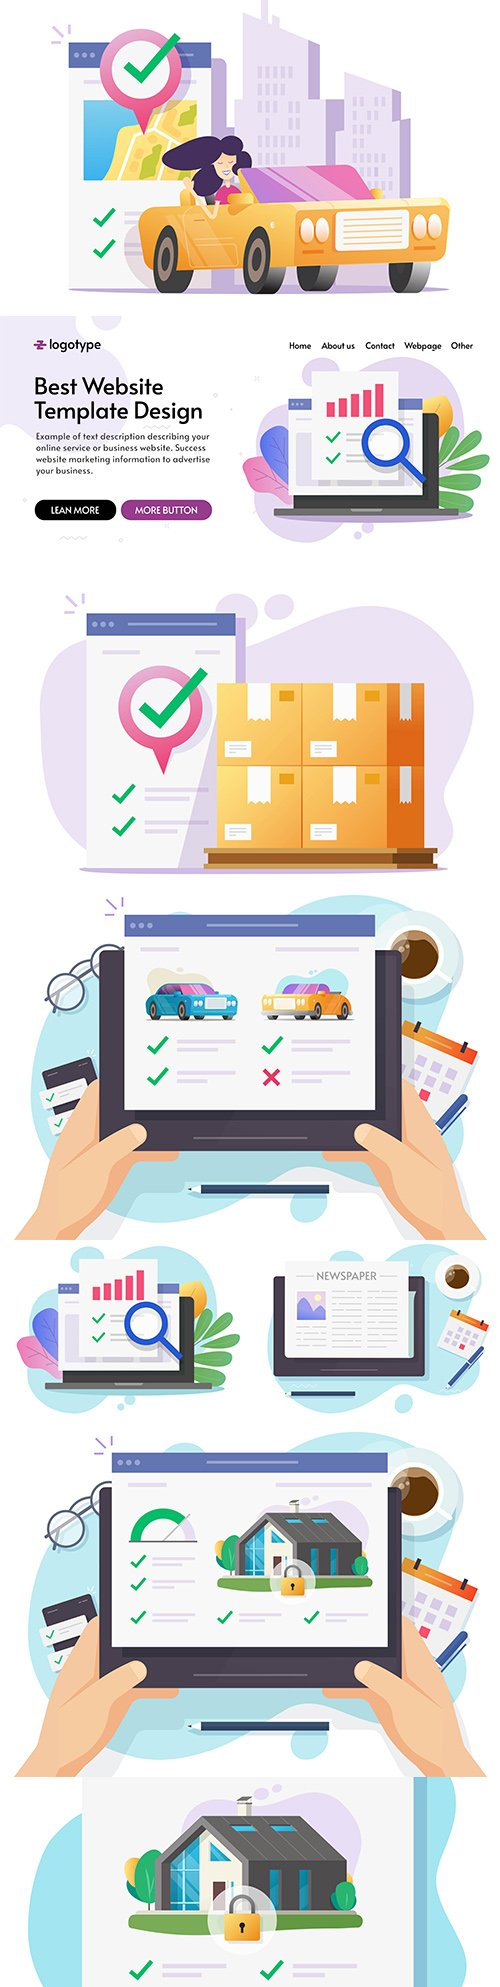 Smart home security and logistics for internet technology delivery